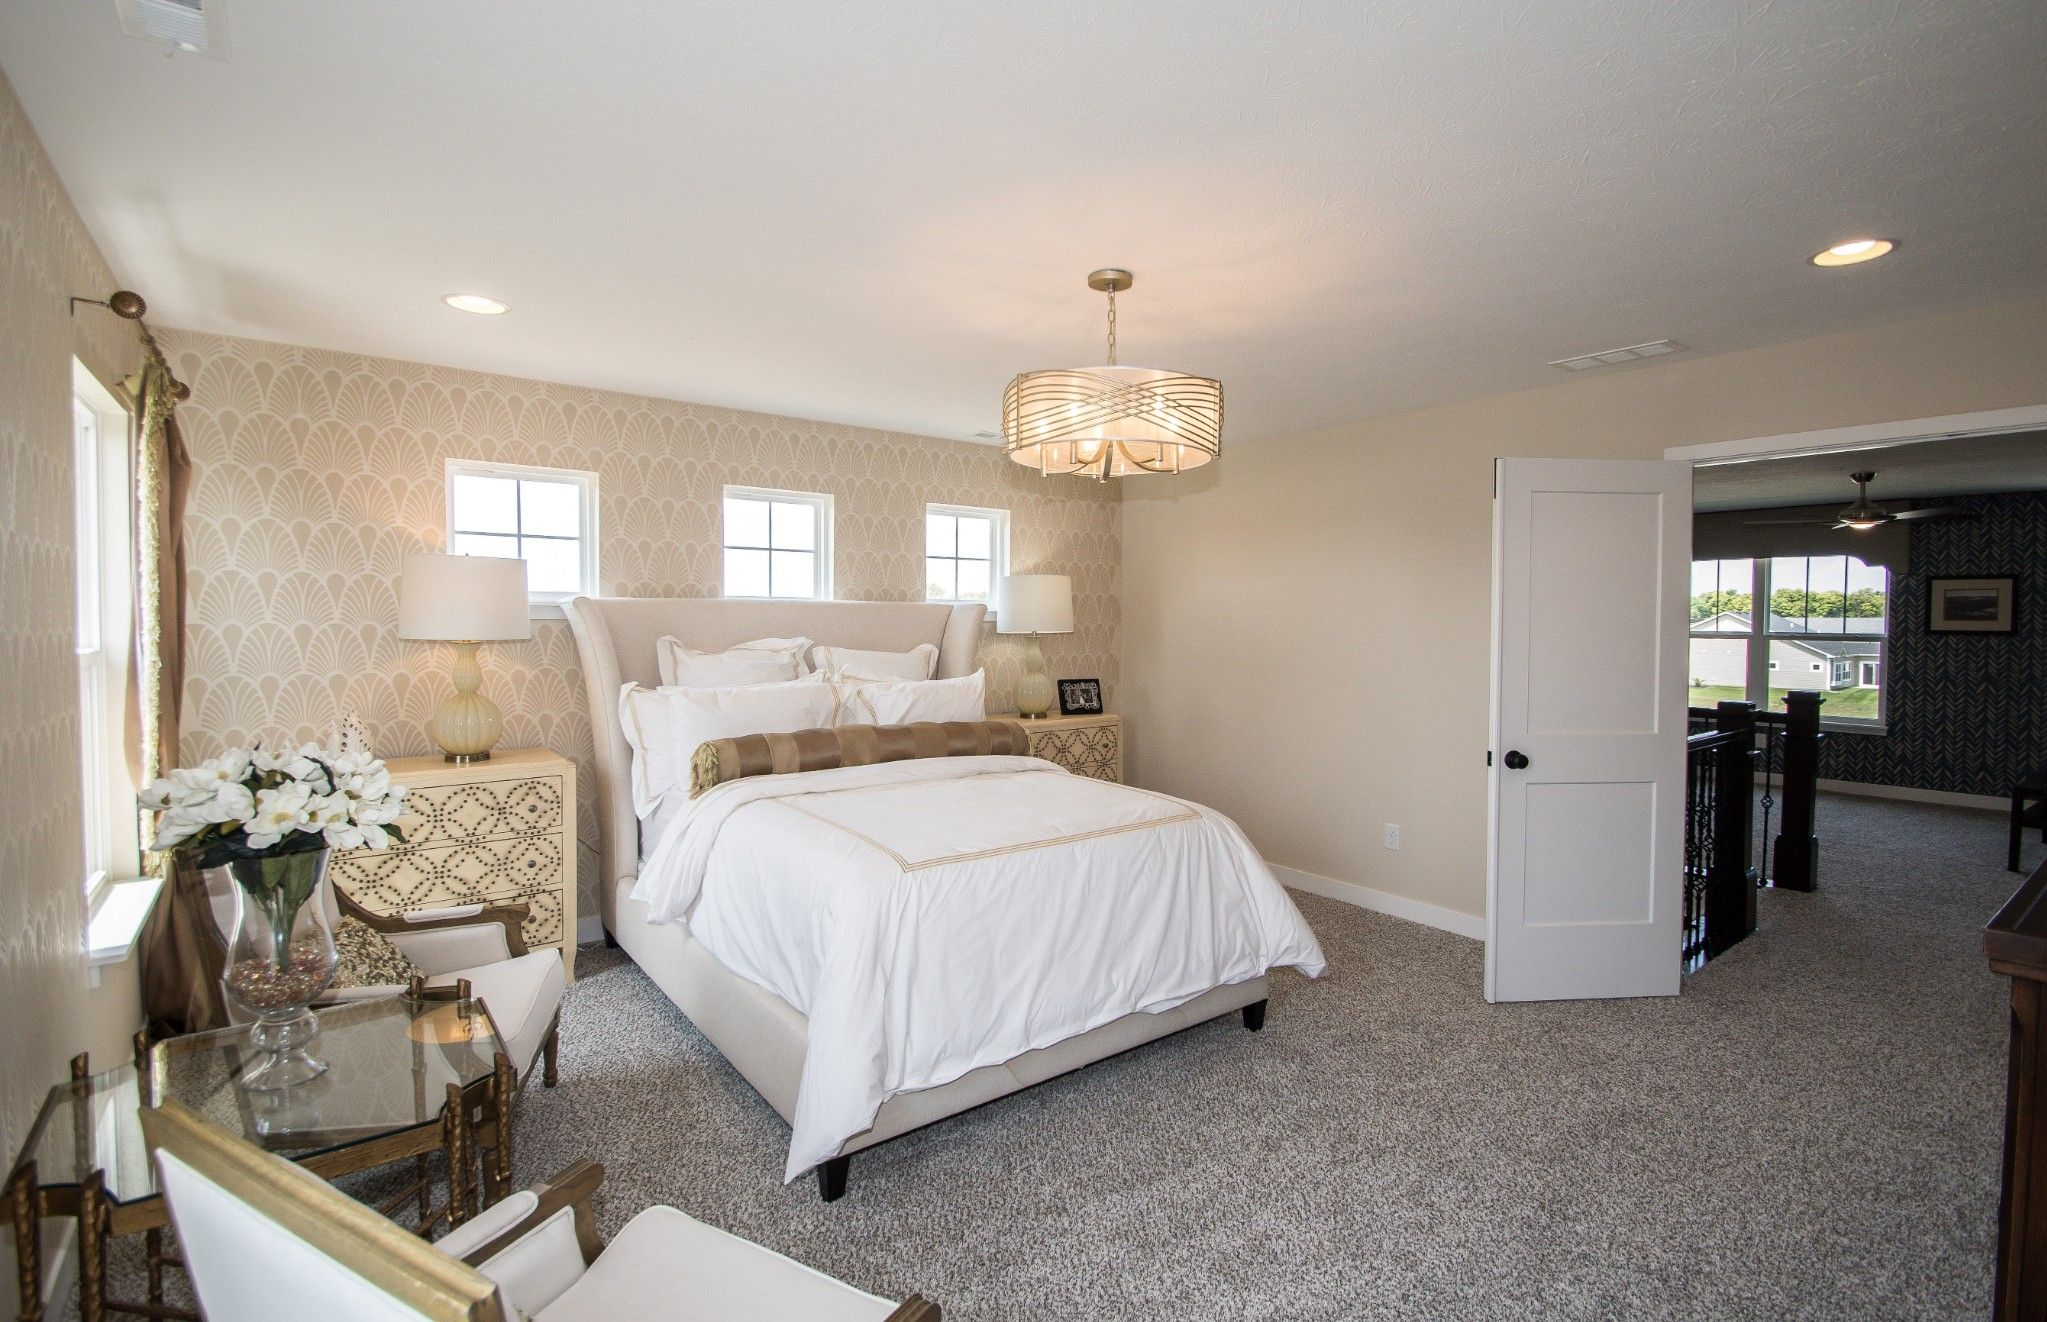 Bedroom featured in the Preston By Olthof Homes in Fort Wayne, IN